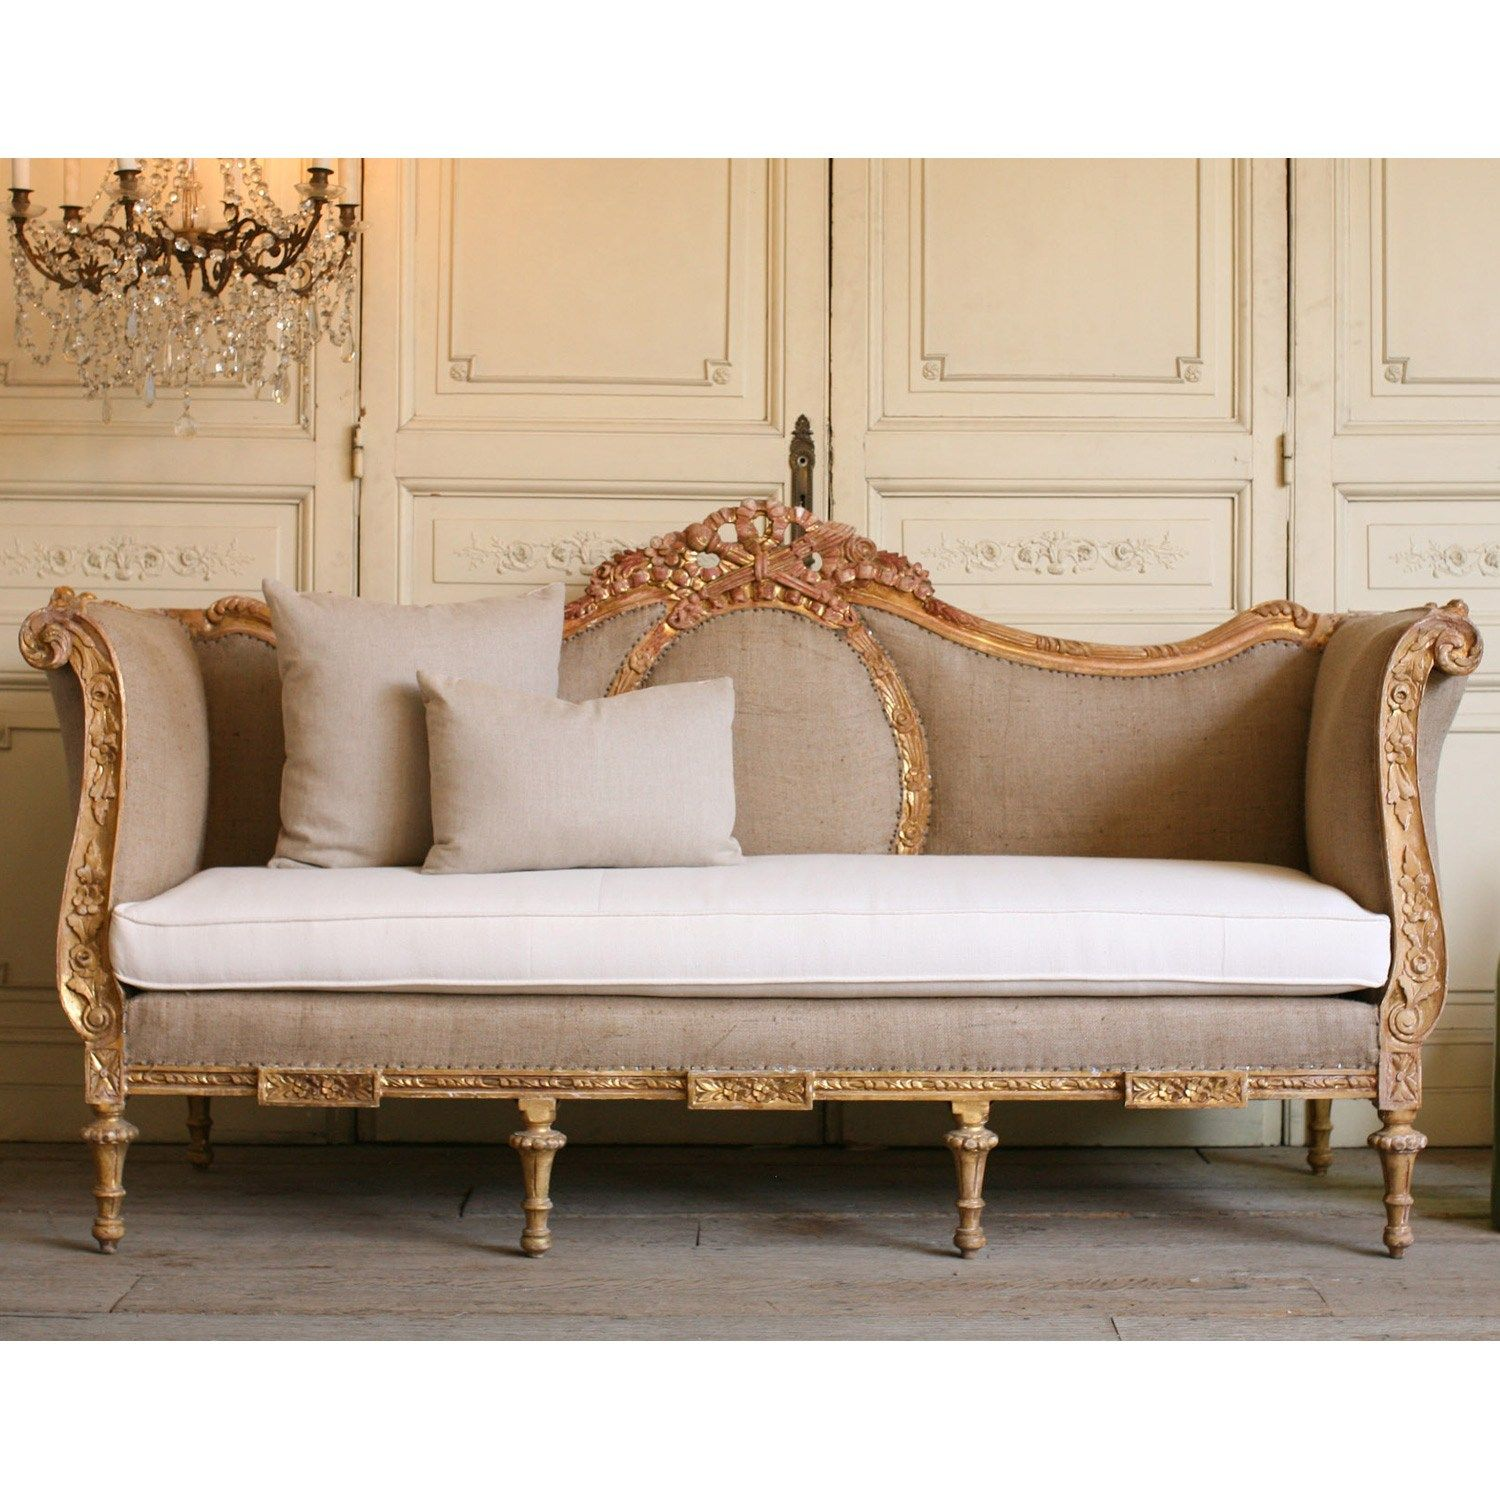 Vintage Daybed one of a kind vintage daybed ornate warm gold | for the home in 2018